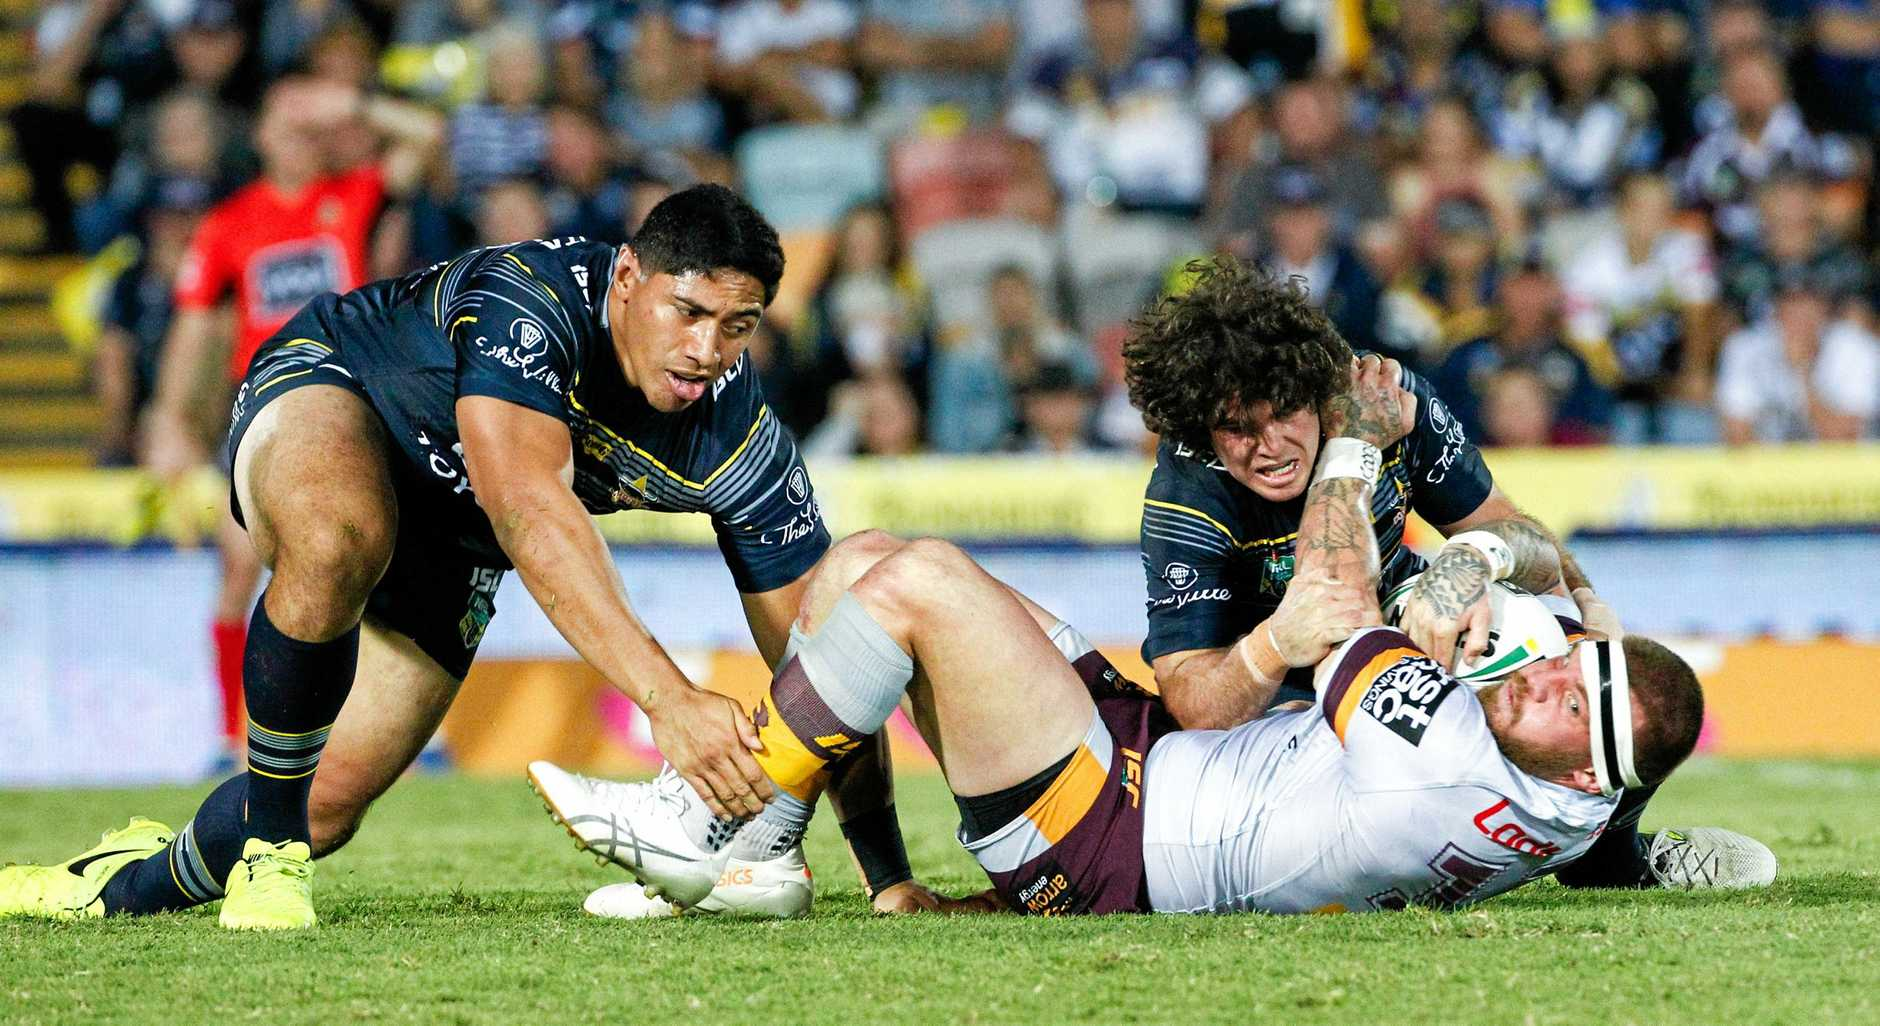 Josh McGuire of the Broncos is grounded by Cowboys Jason Taumalolo, left, and Jake Granville, right, during the Round 26 NRL match between the North Queensland Cowboys and the Brisbane Broncos at 1300SMILES Stadium in Townsville, Thursday, August 31, 2017. (AAP Image/Michael Chambers) NO ARCHIVING, EDITORIAL USE ONLY